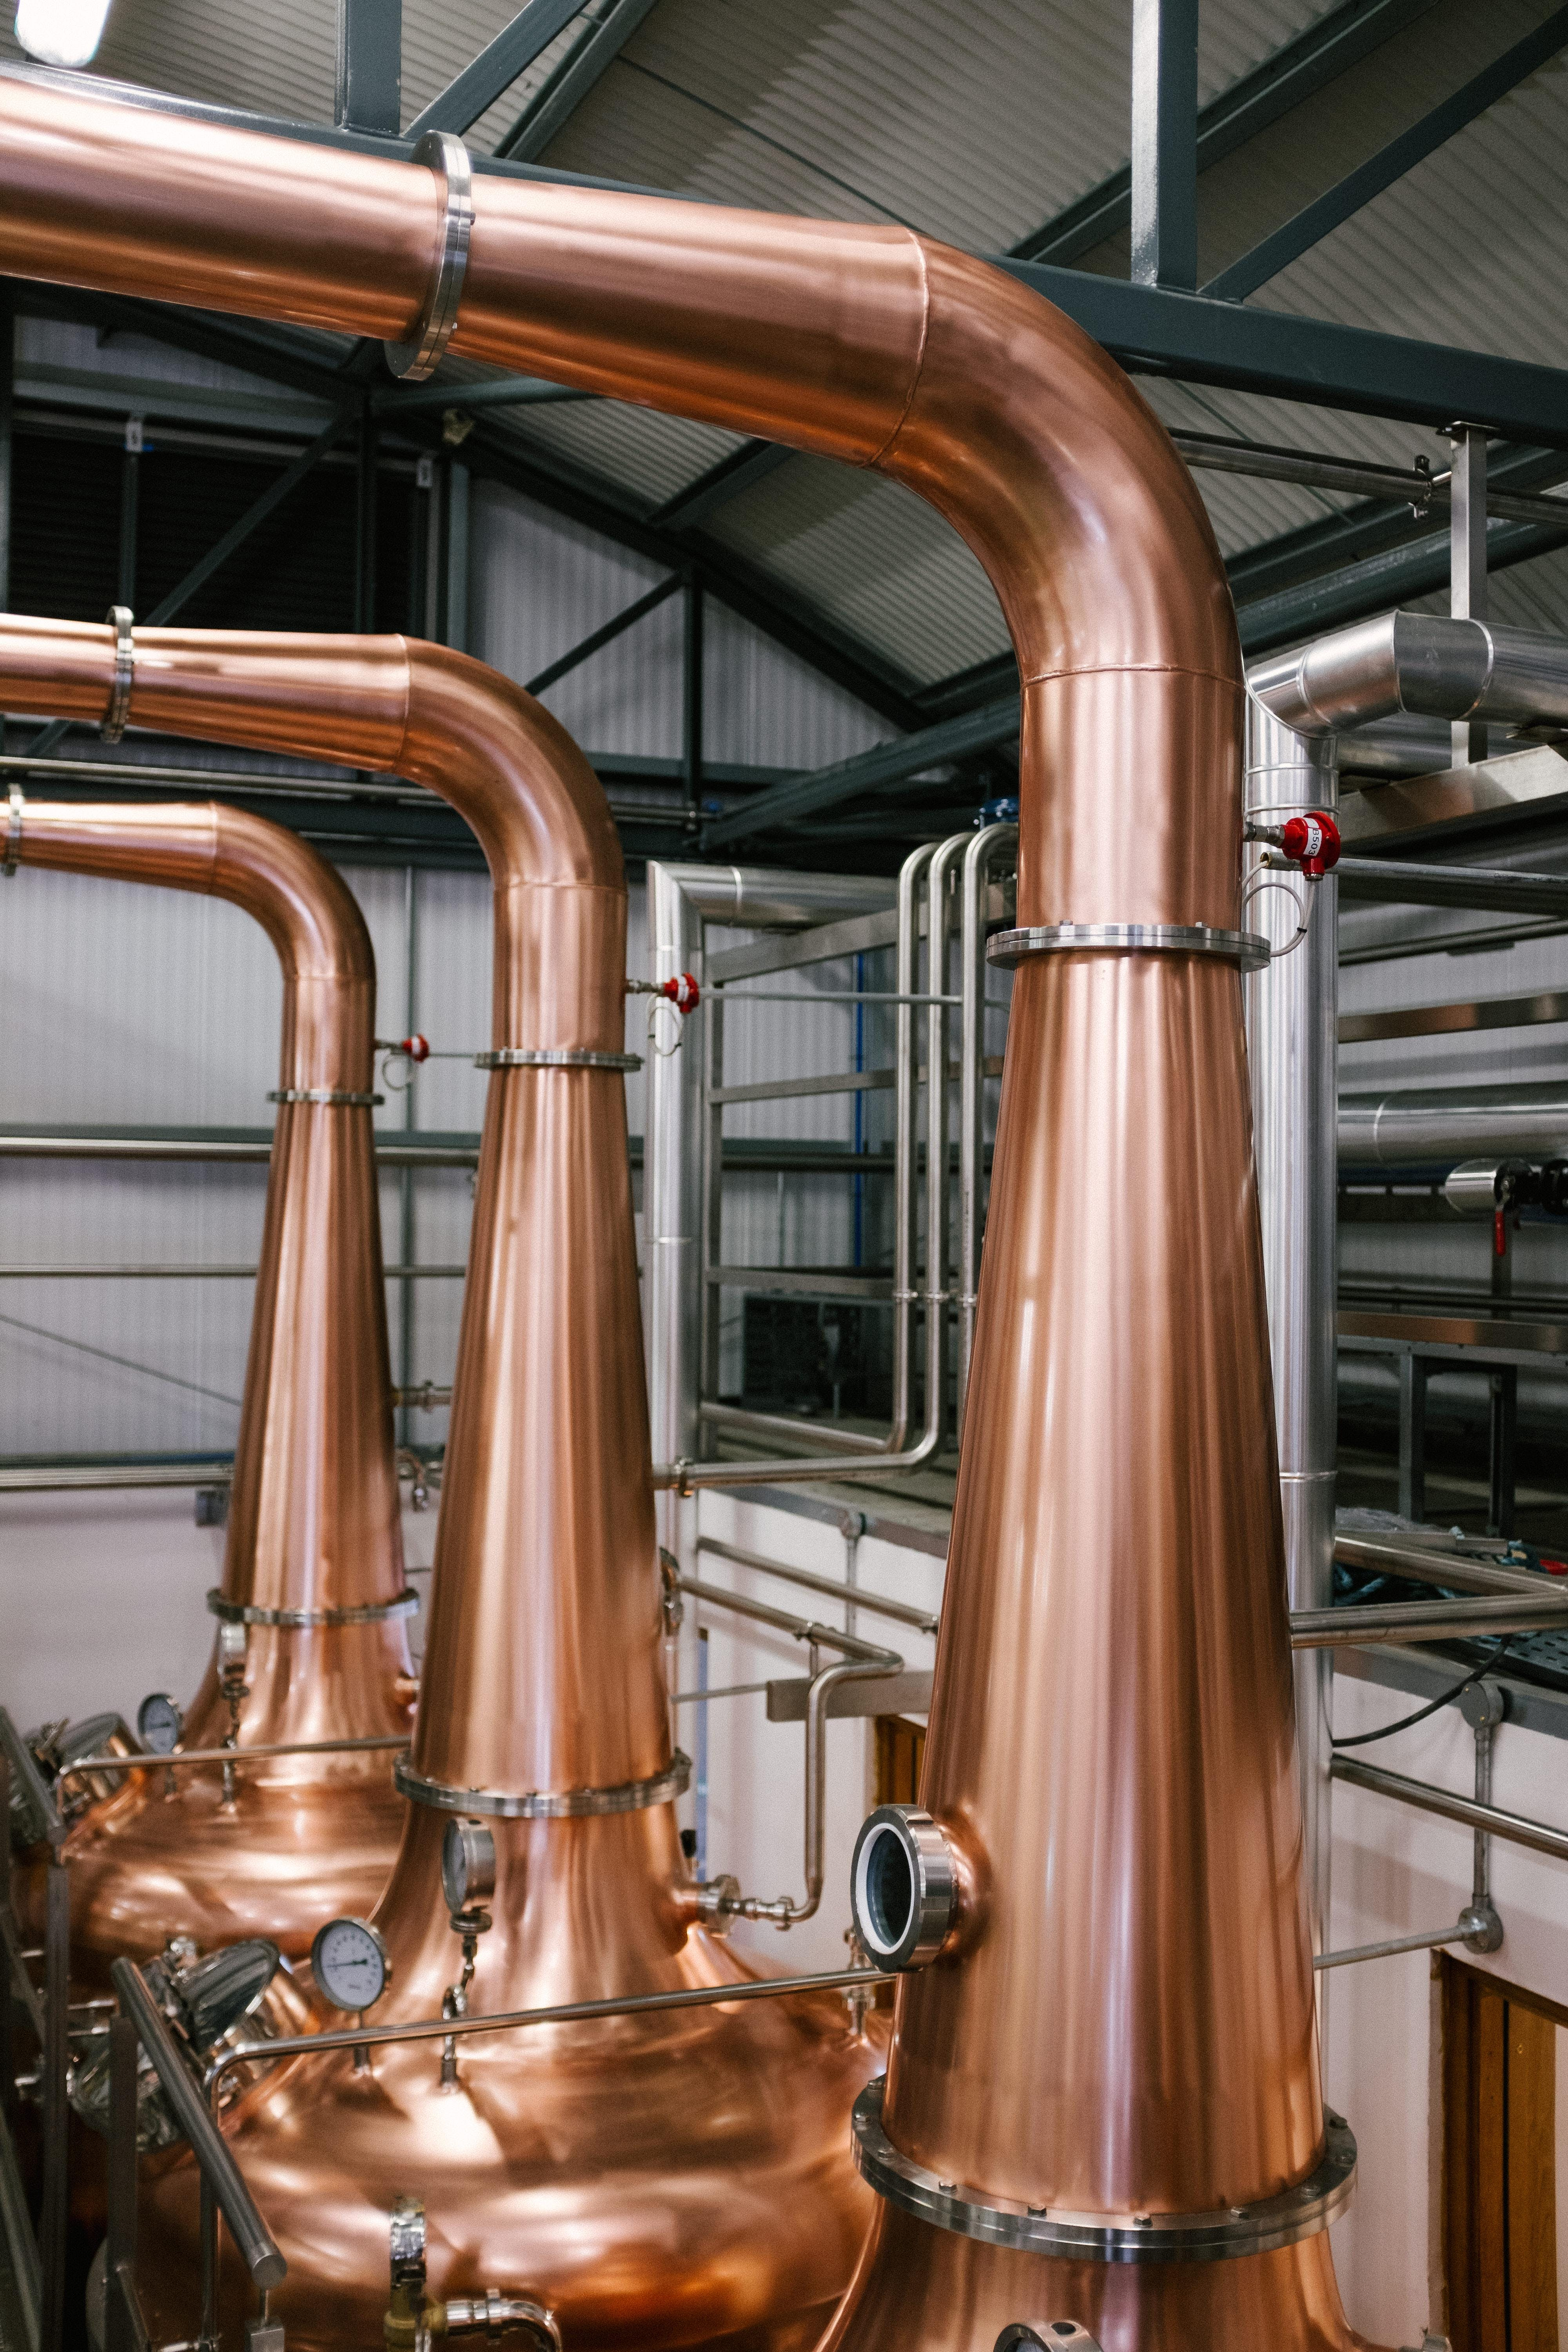 Ballykeefe Distillery Visitor Experience